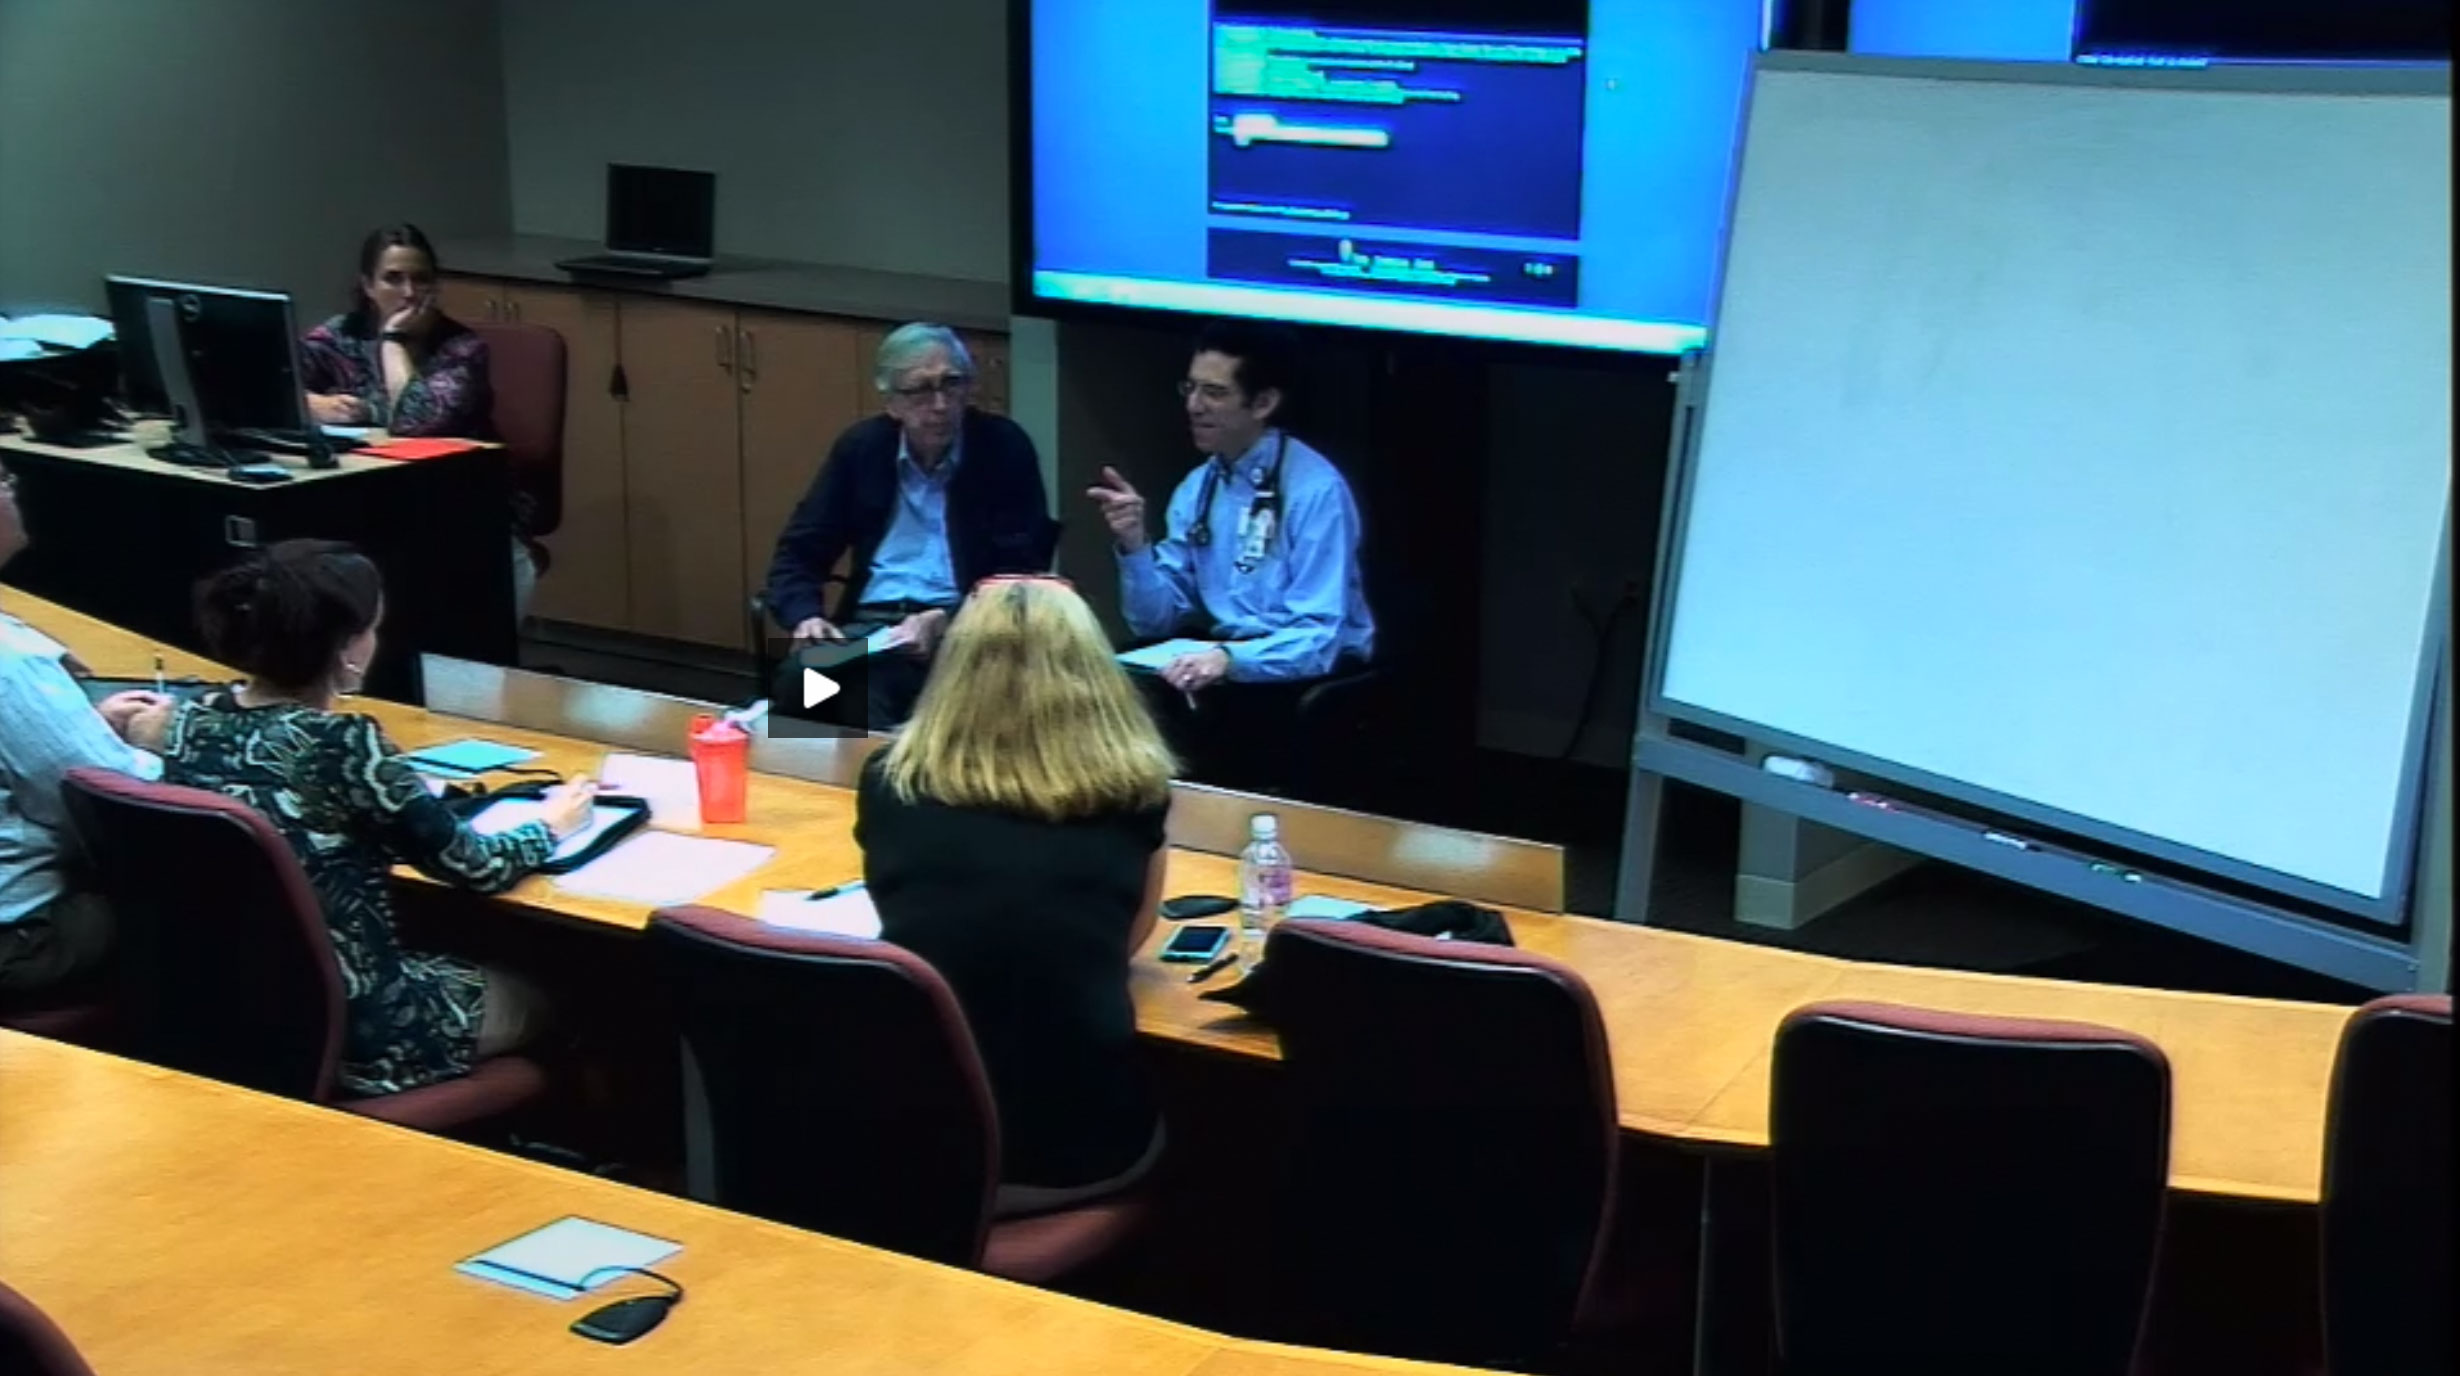 Picture from UW EDUCATOR WORKSHOP SERIES ON IMPROVING PROFESSIONAL LEARNING video